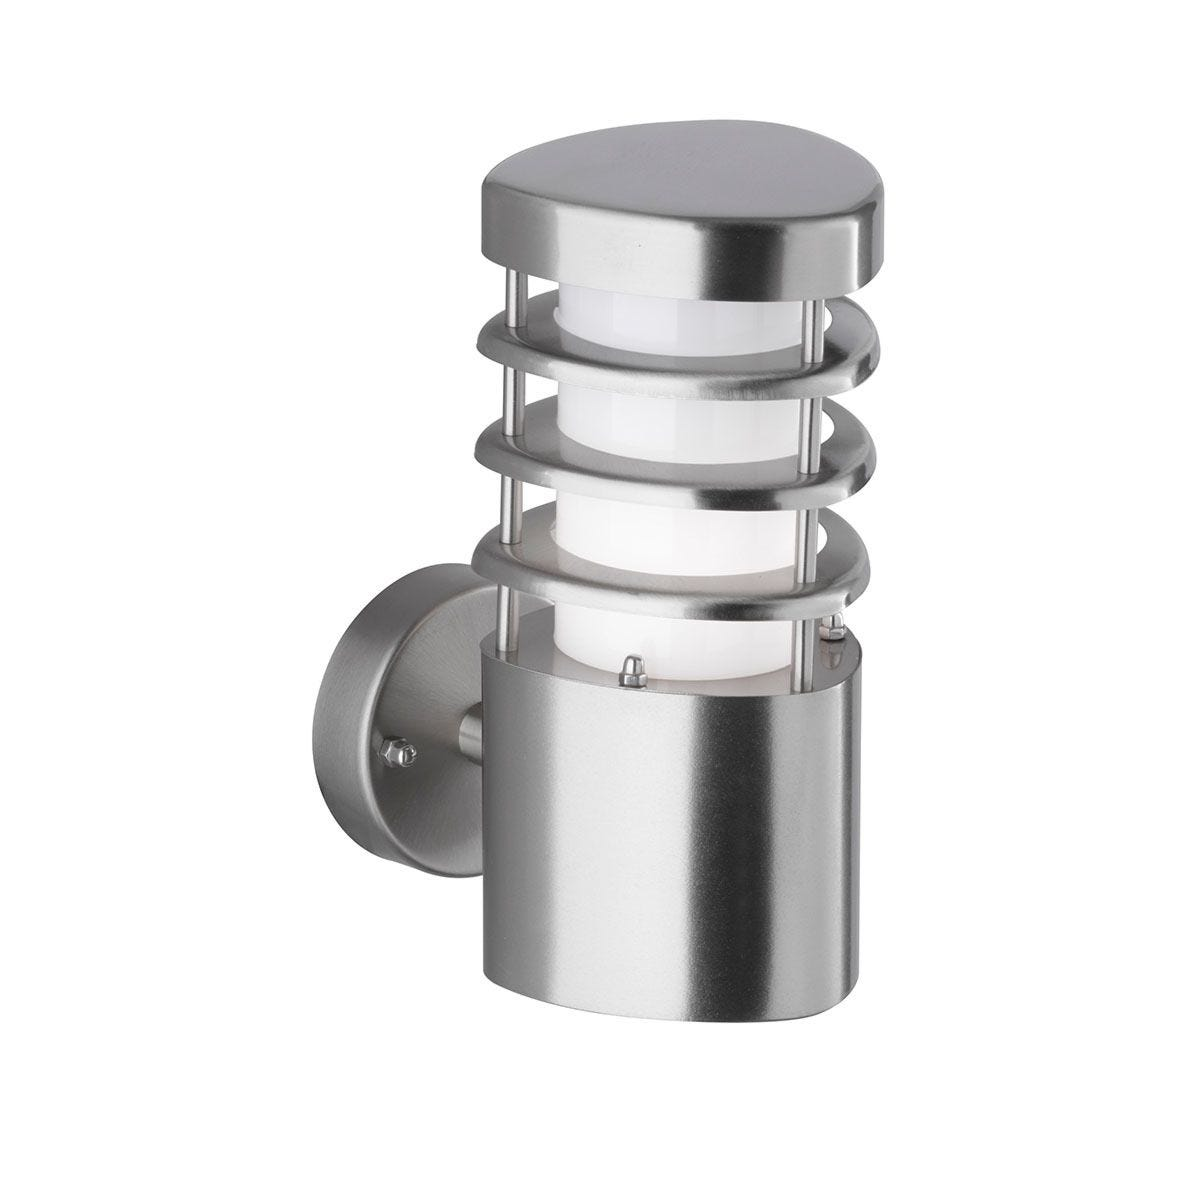 Wofi Chesta 3 Sided Wall Lamp - Brushed Stainless Steel